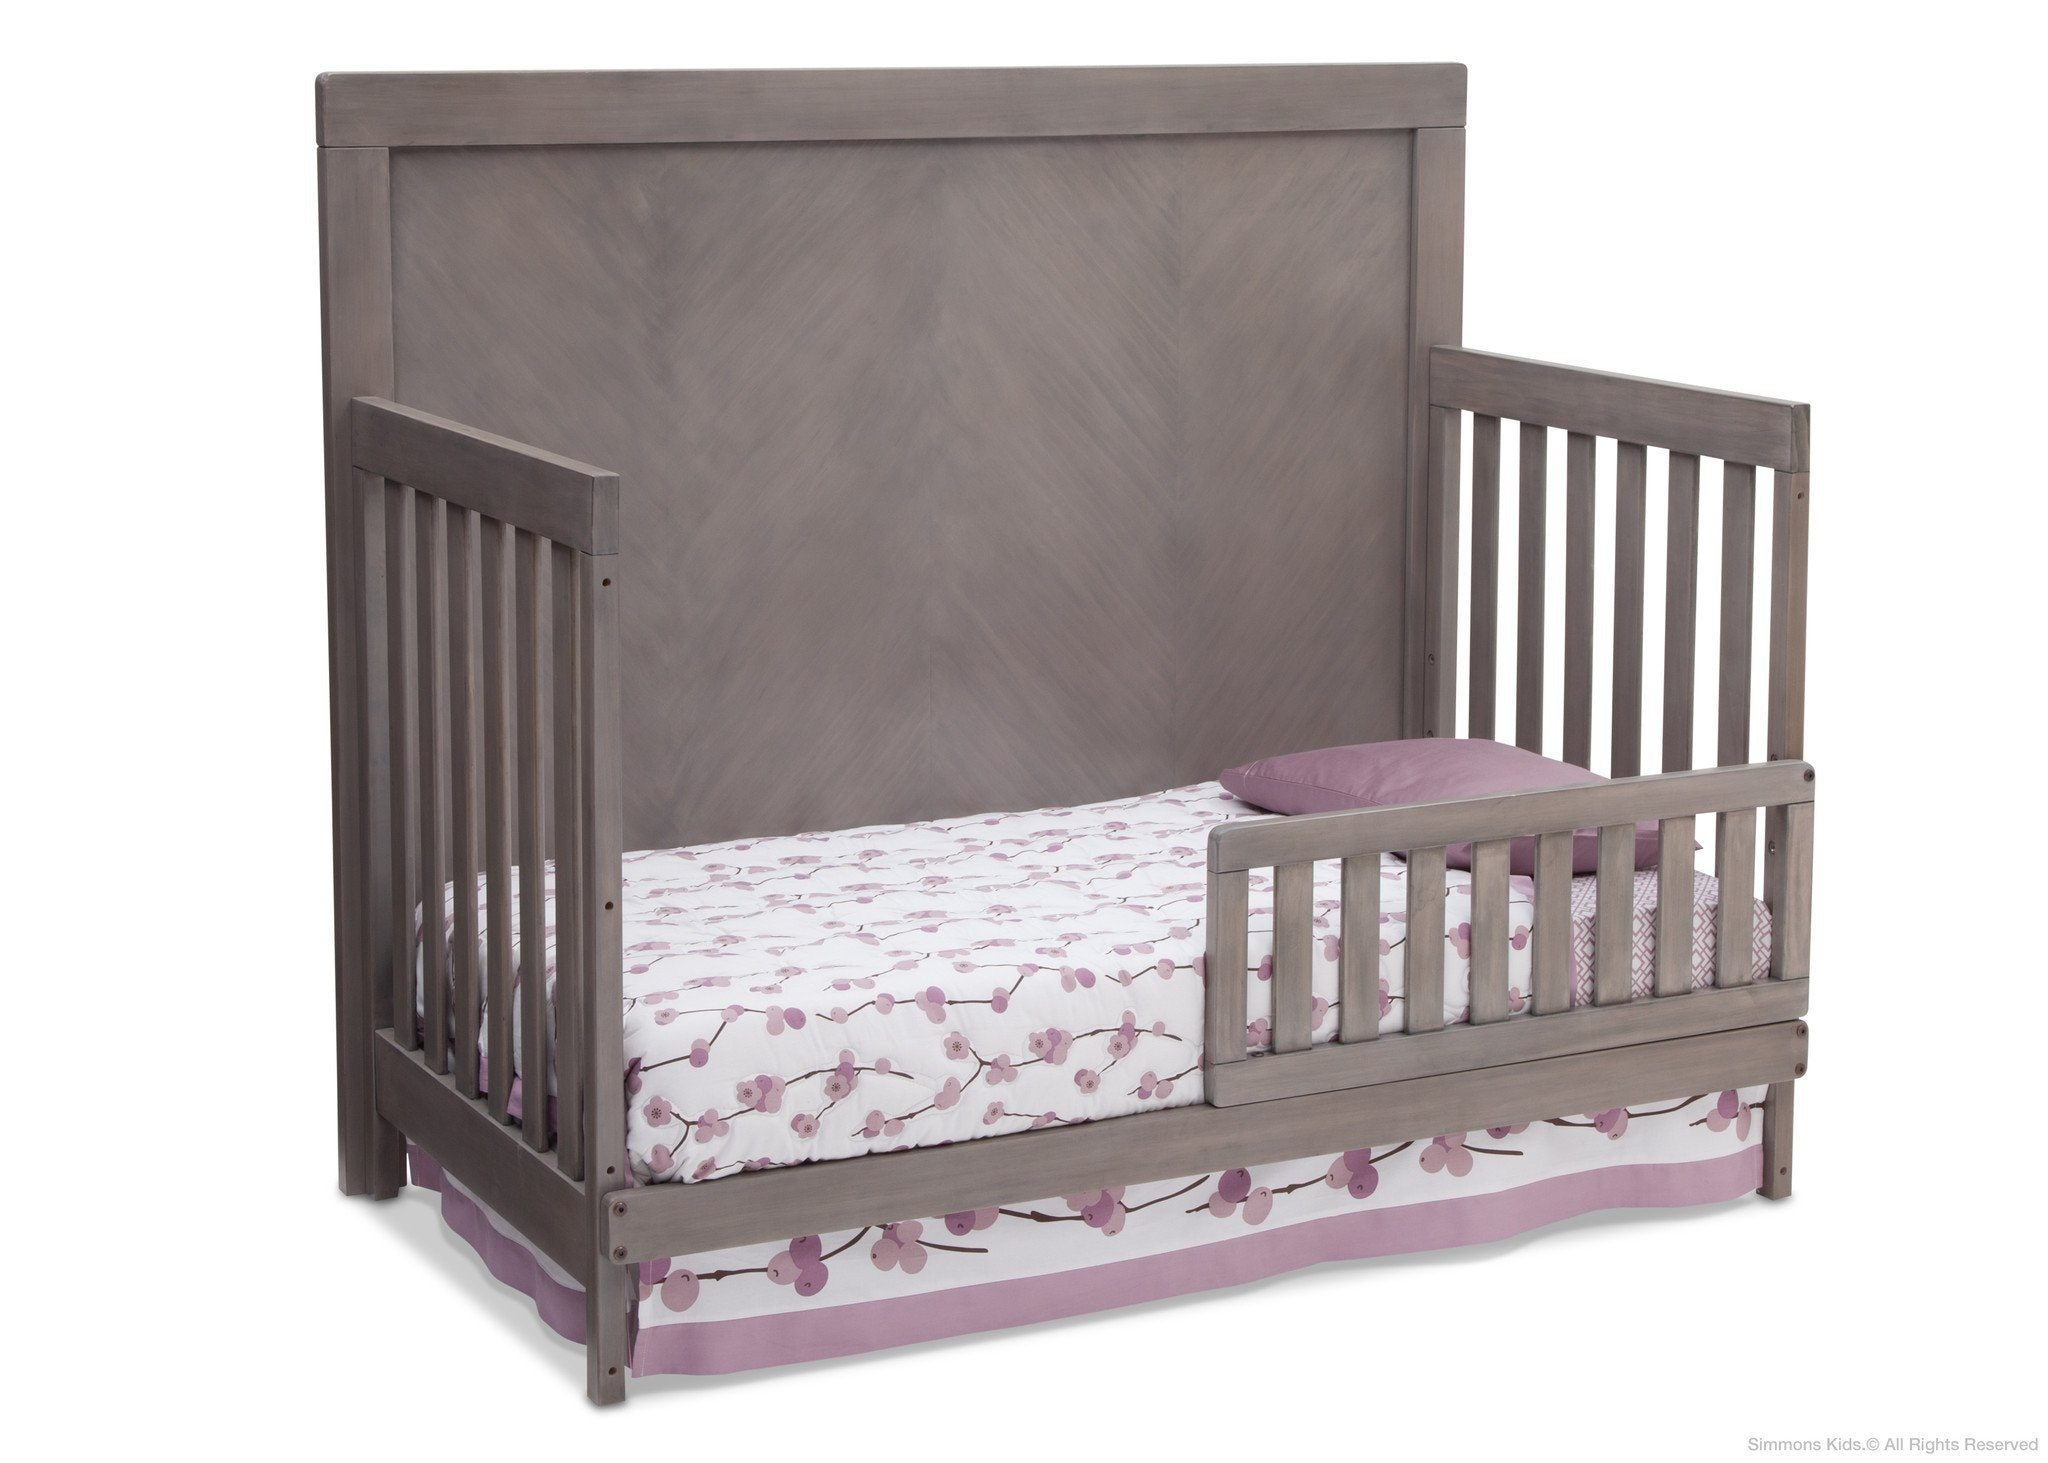 Simmons Kids Stained Grey (054) Bellante 4-in-1 Crib, Toddler Bed Conversion b2b